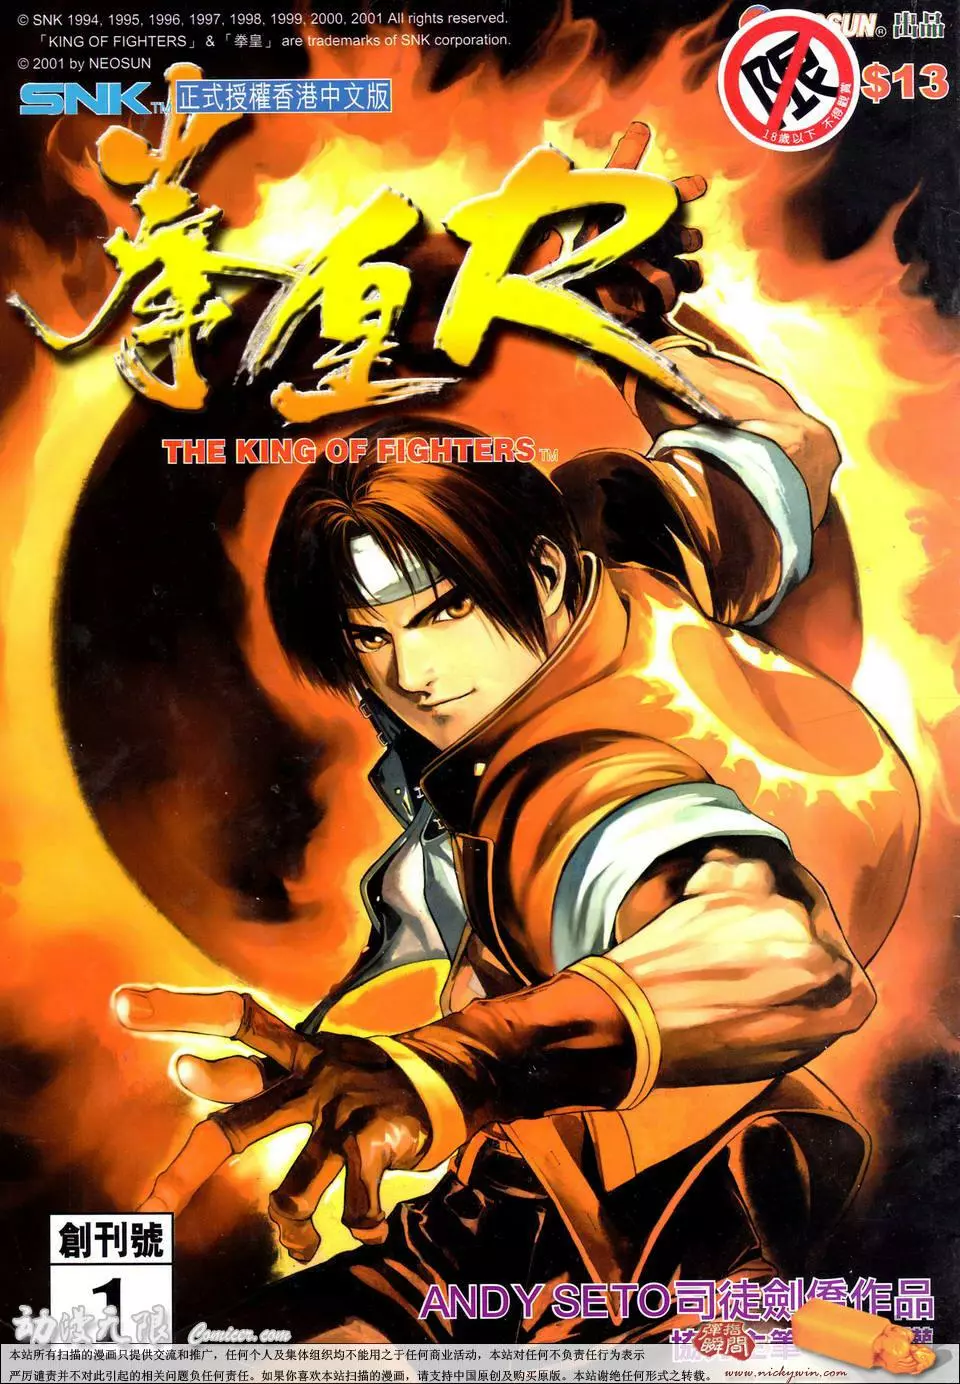 The King of Fighters: Return